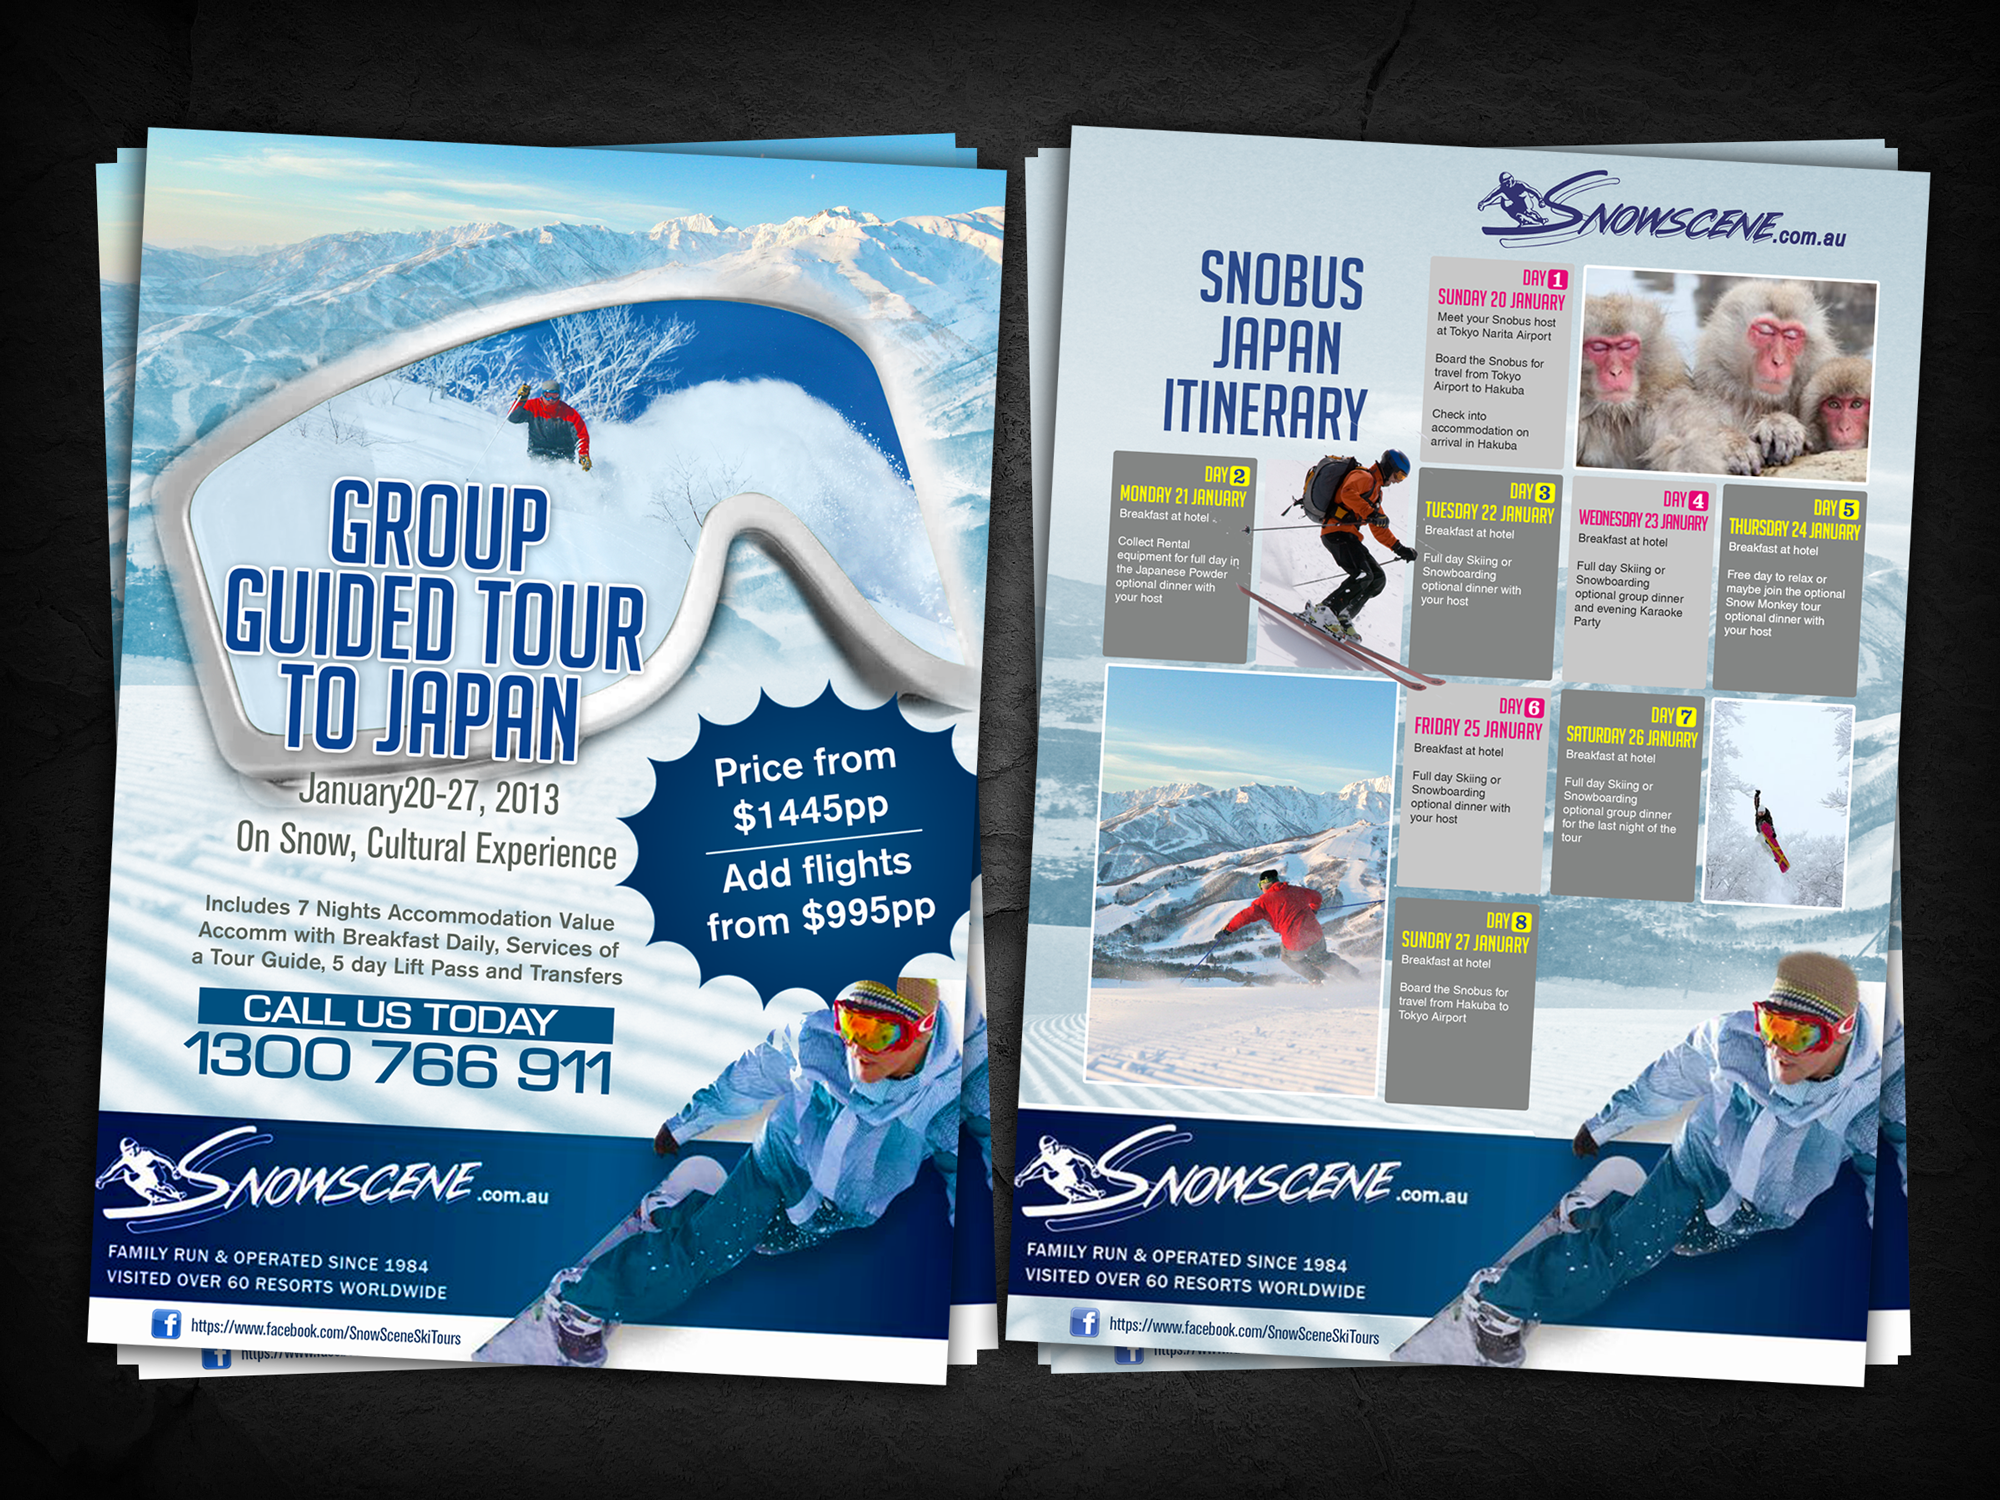 Help Snowscene with a new postcard or flyer